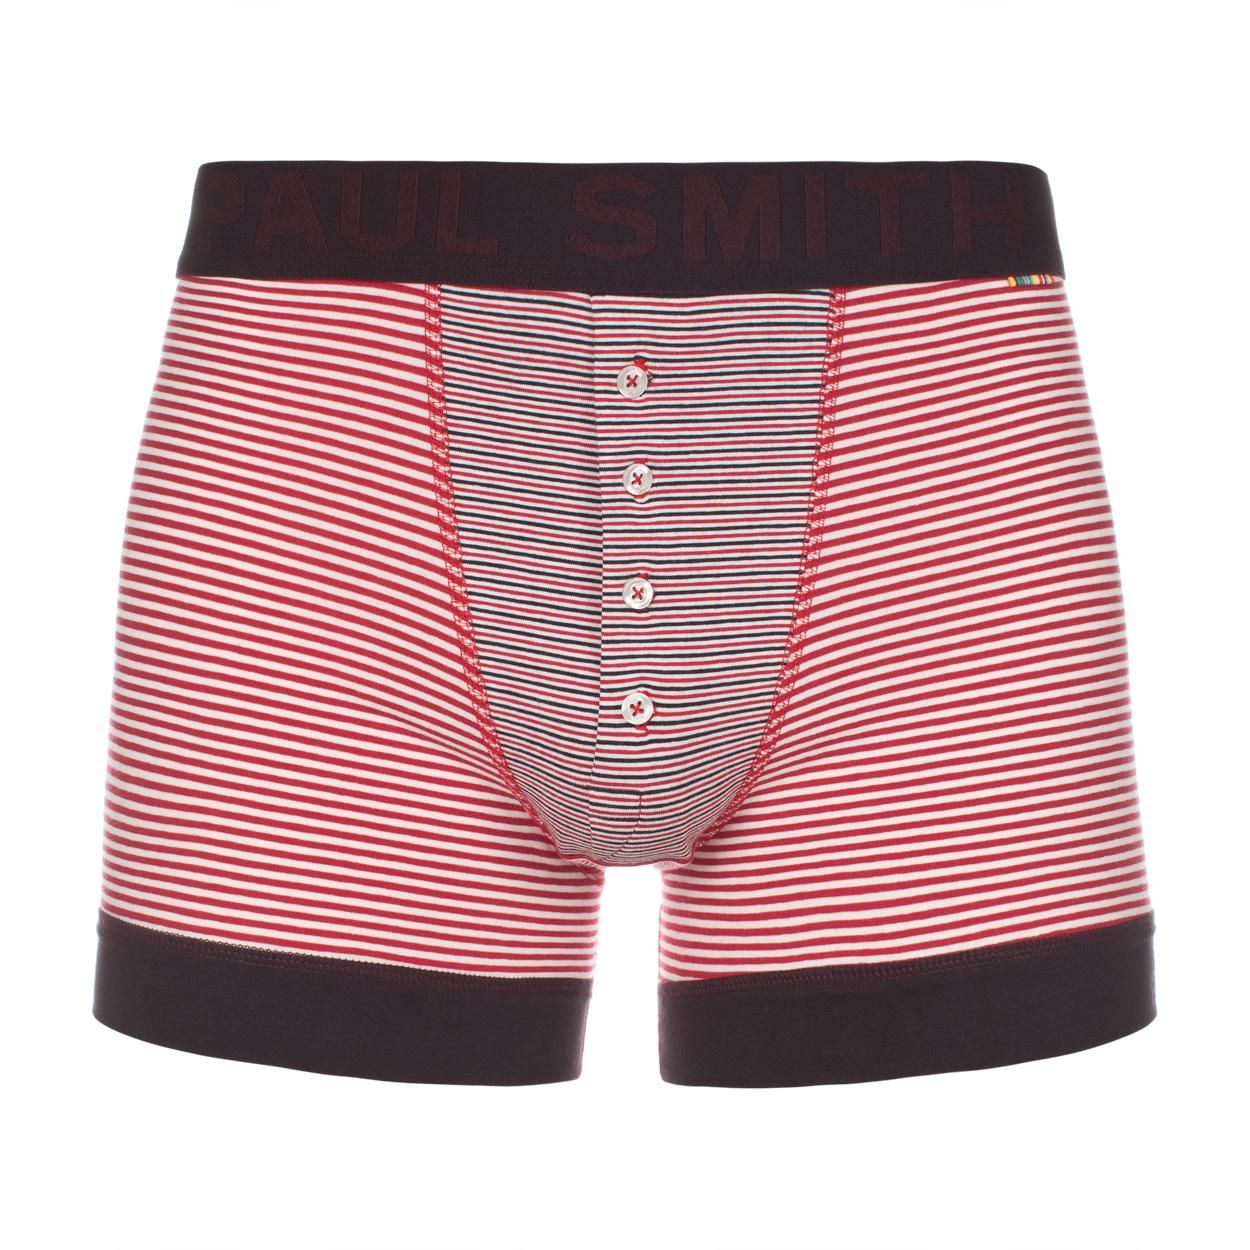 Paul Smith Underwear | Red And White Striped Boxer-Briefs | IDEAS ...